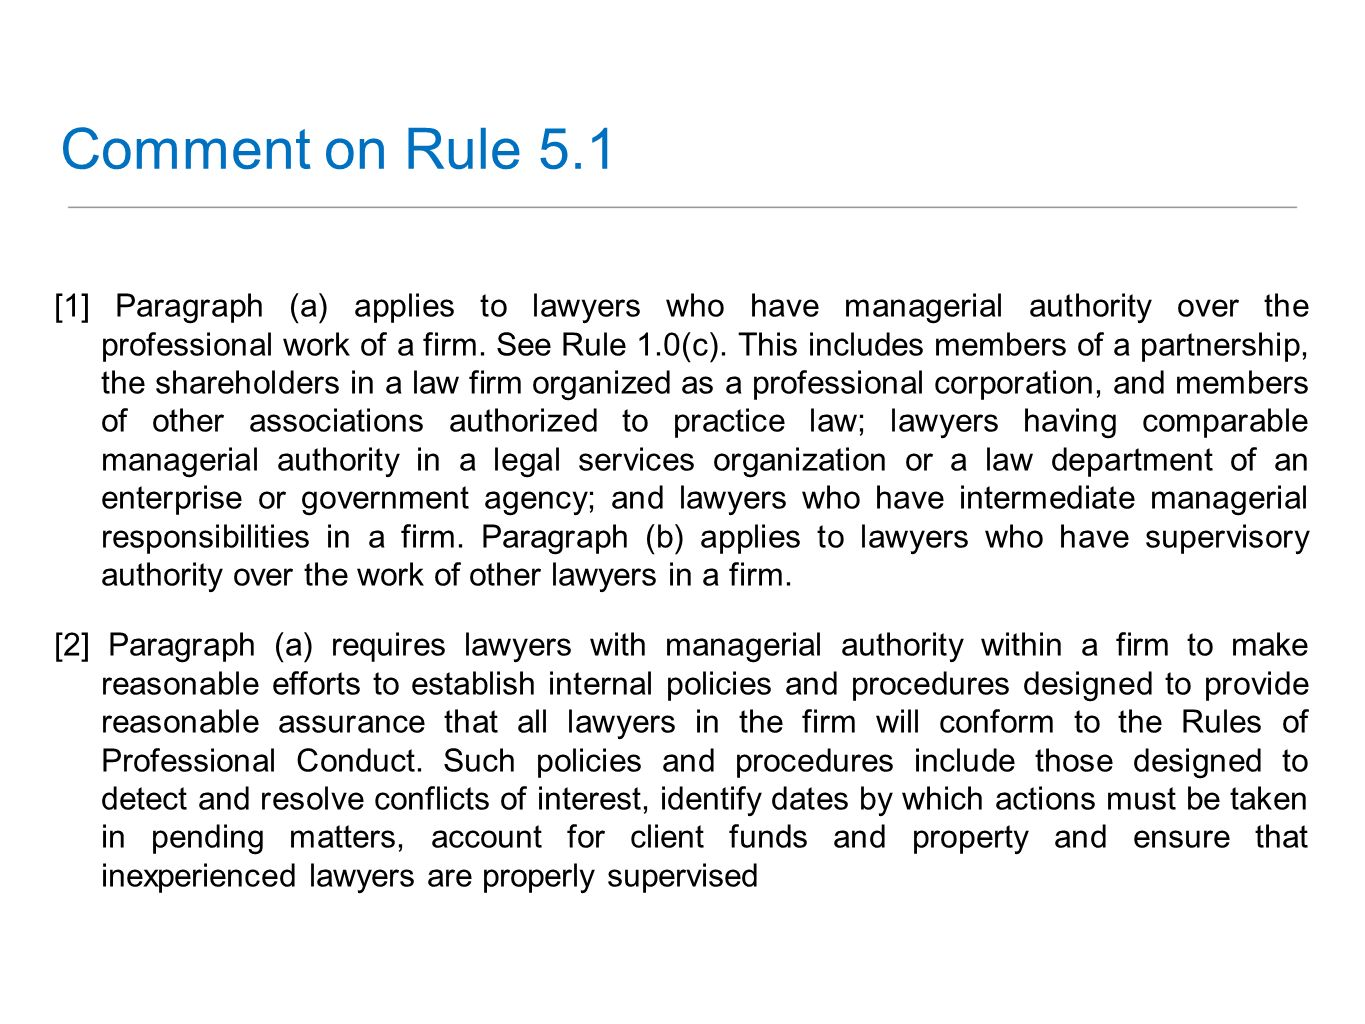 Comment on Rule 5.1